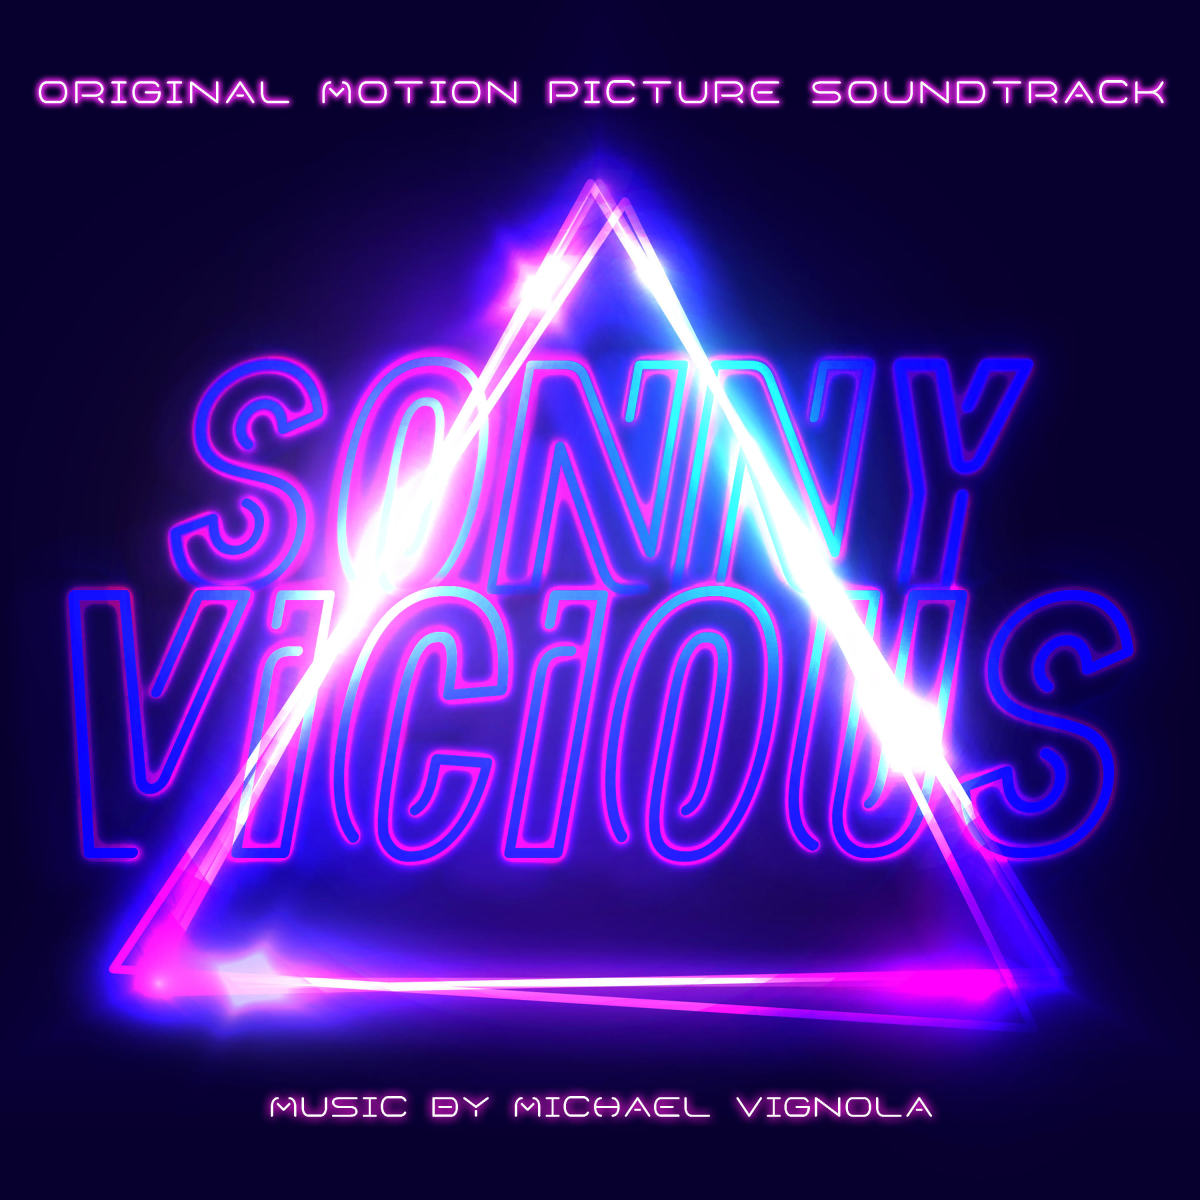 """Synth Soundtrack Review: """"Sonny Vicious OST"""" by Michael Vignola"""